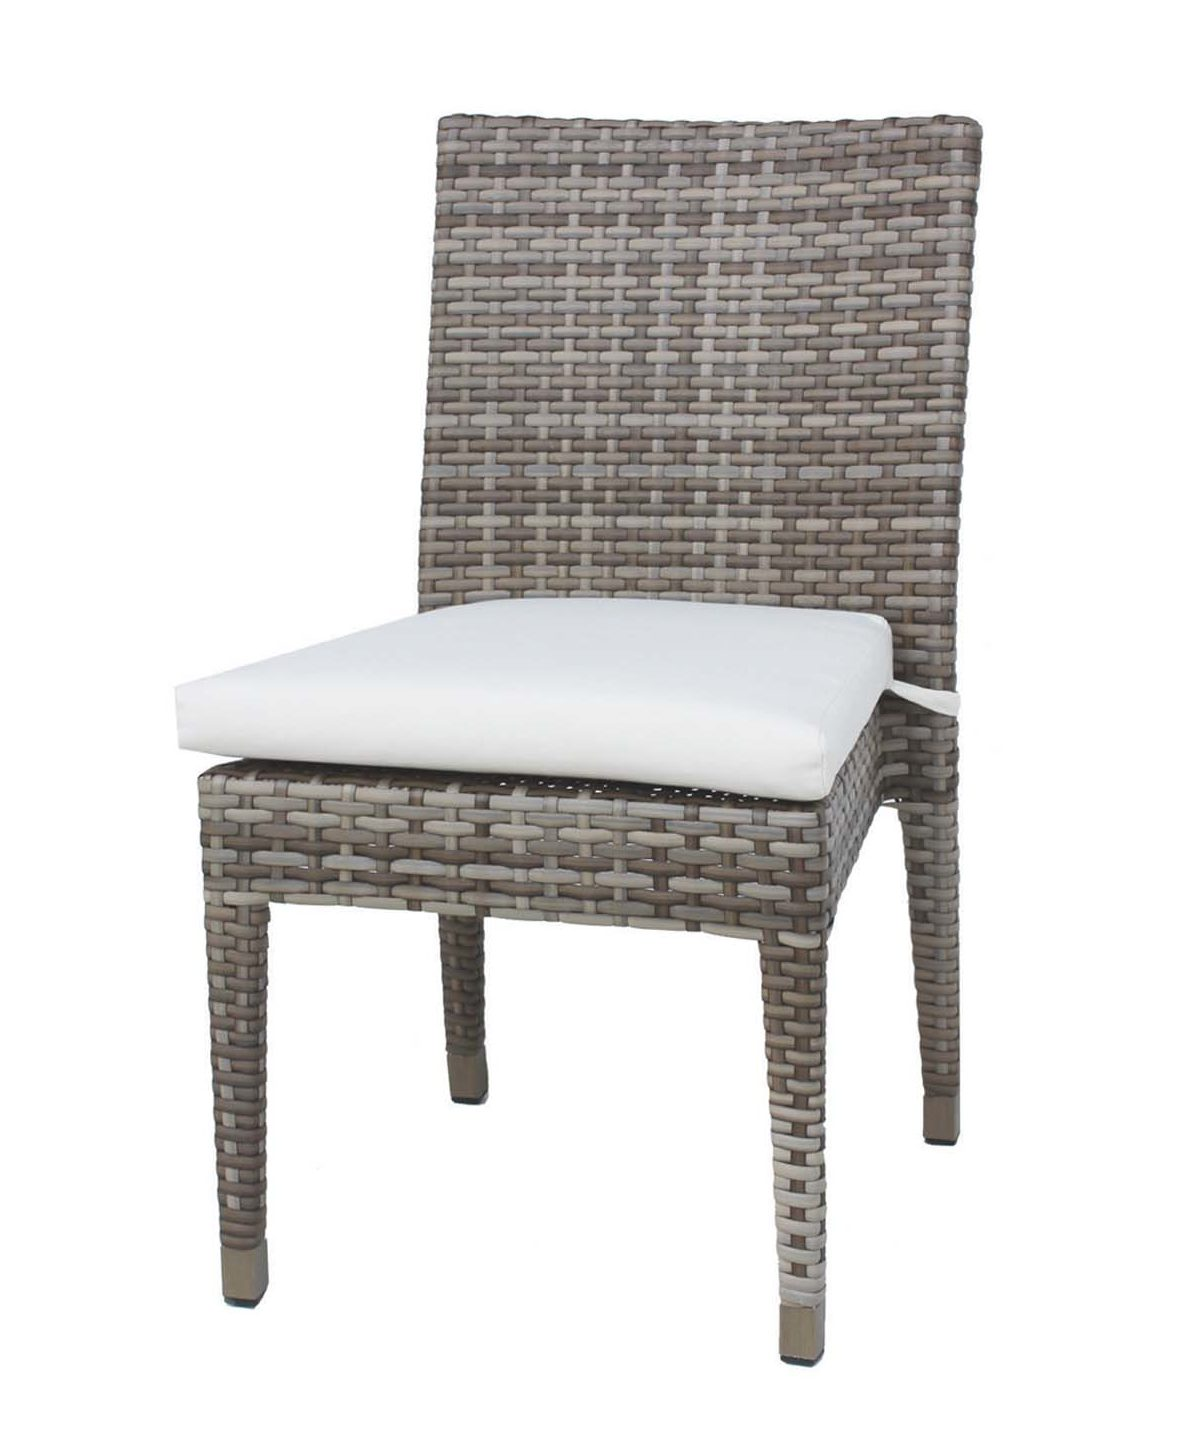 Tuscany dining side chair in taupe wicker with cream seat cushion.